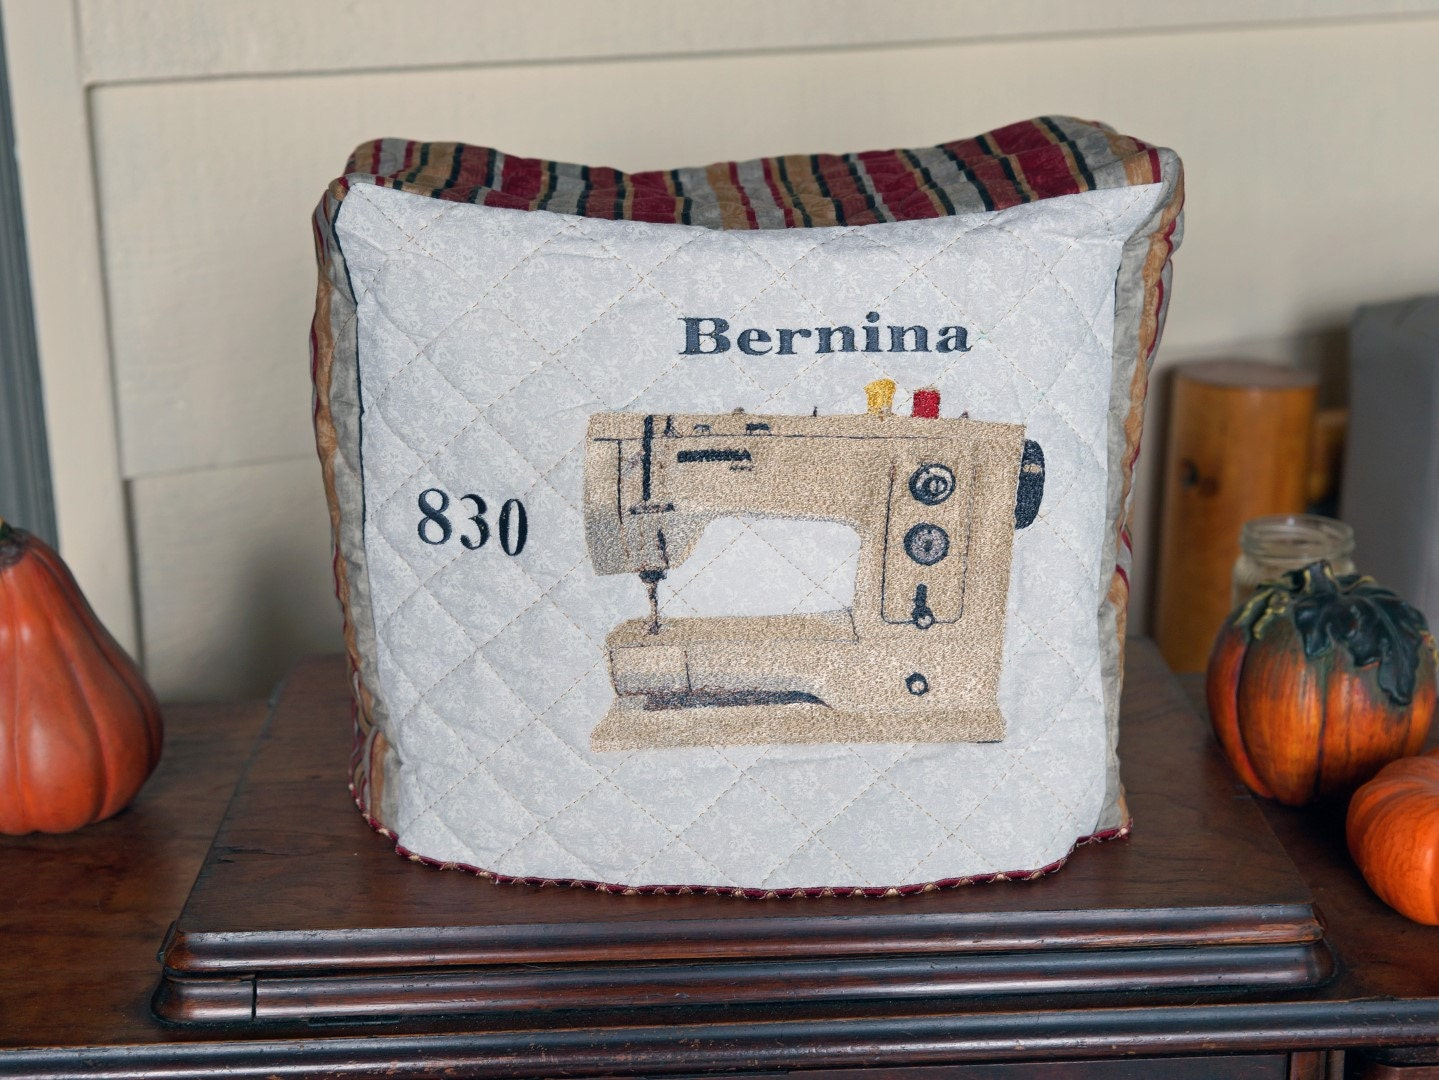 Bernina 830 Record Sewing Machine Dust Cover